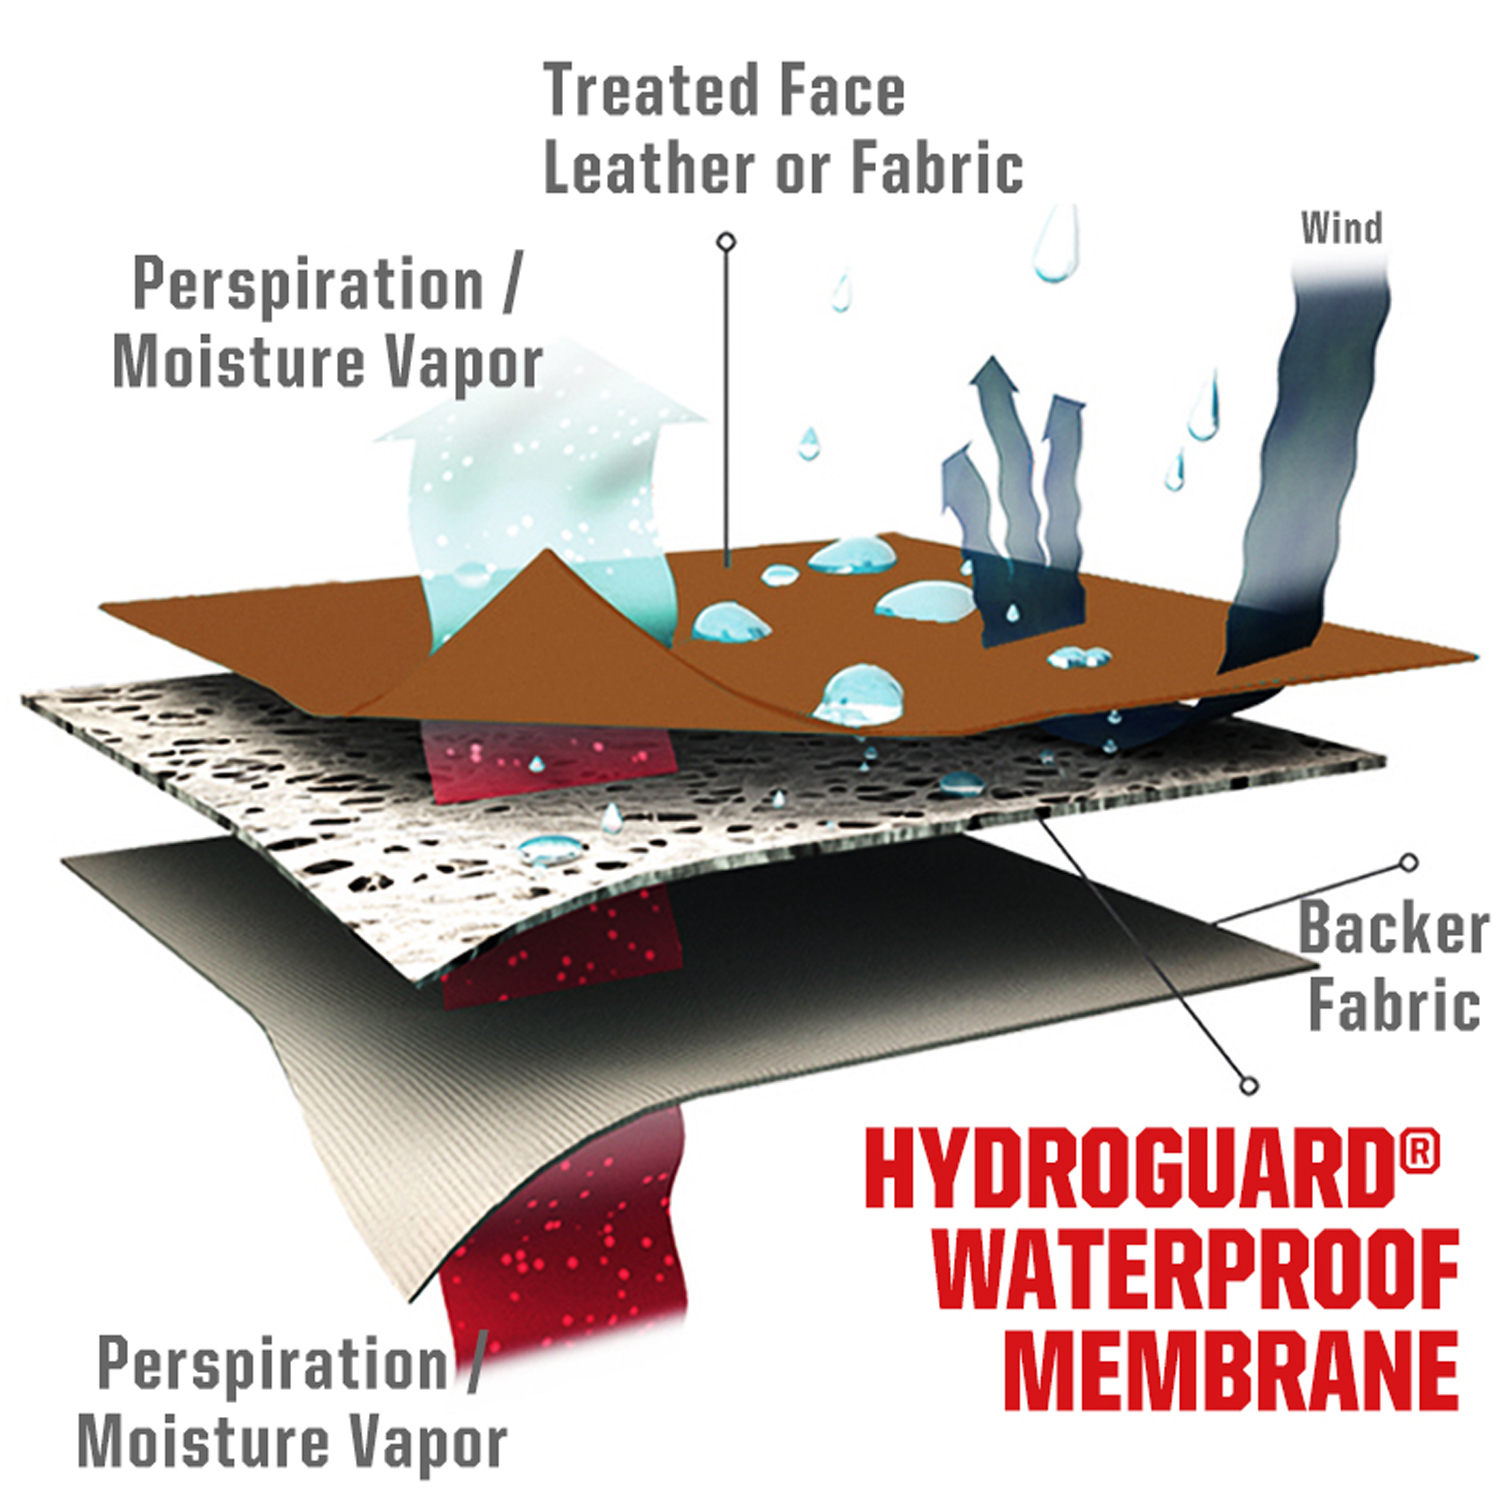 HYDROGUARD® Waterproof